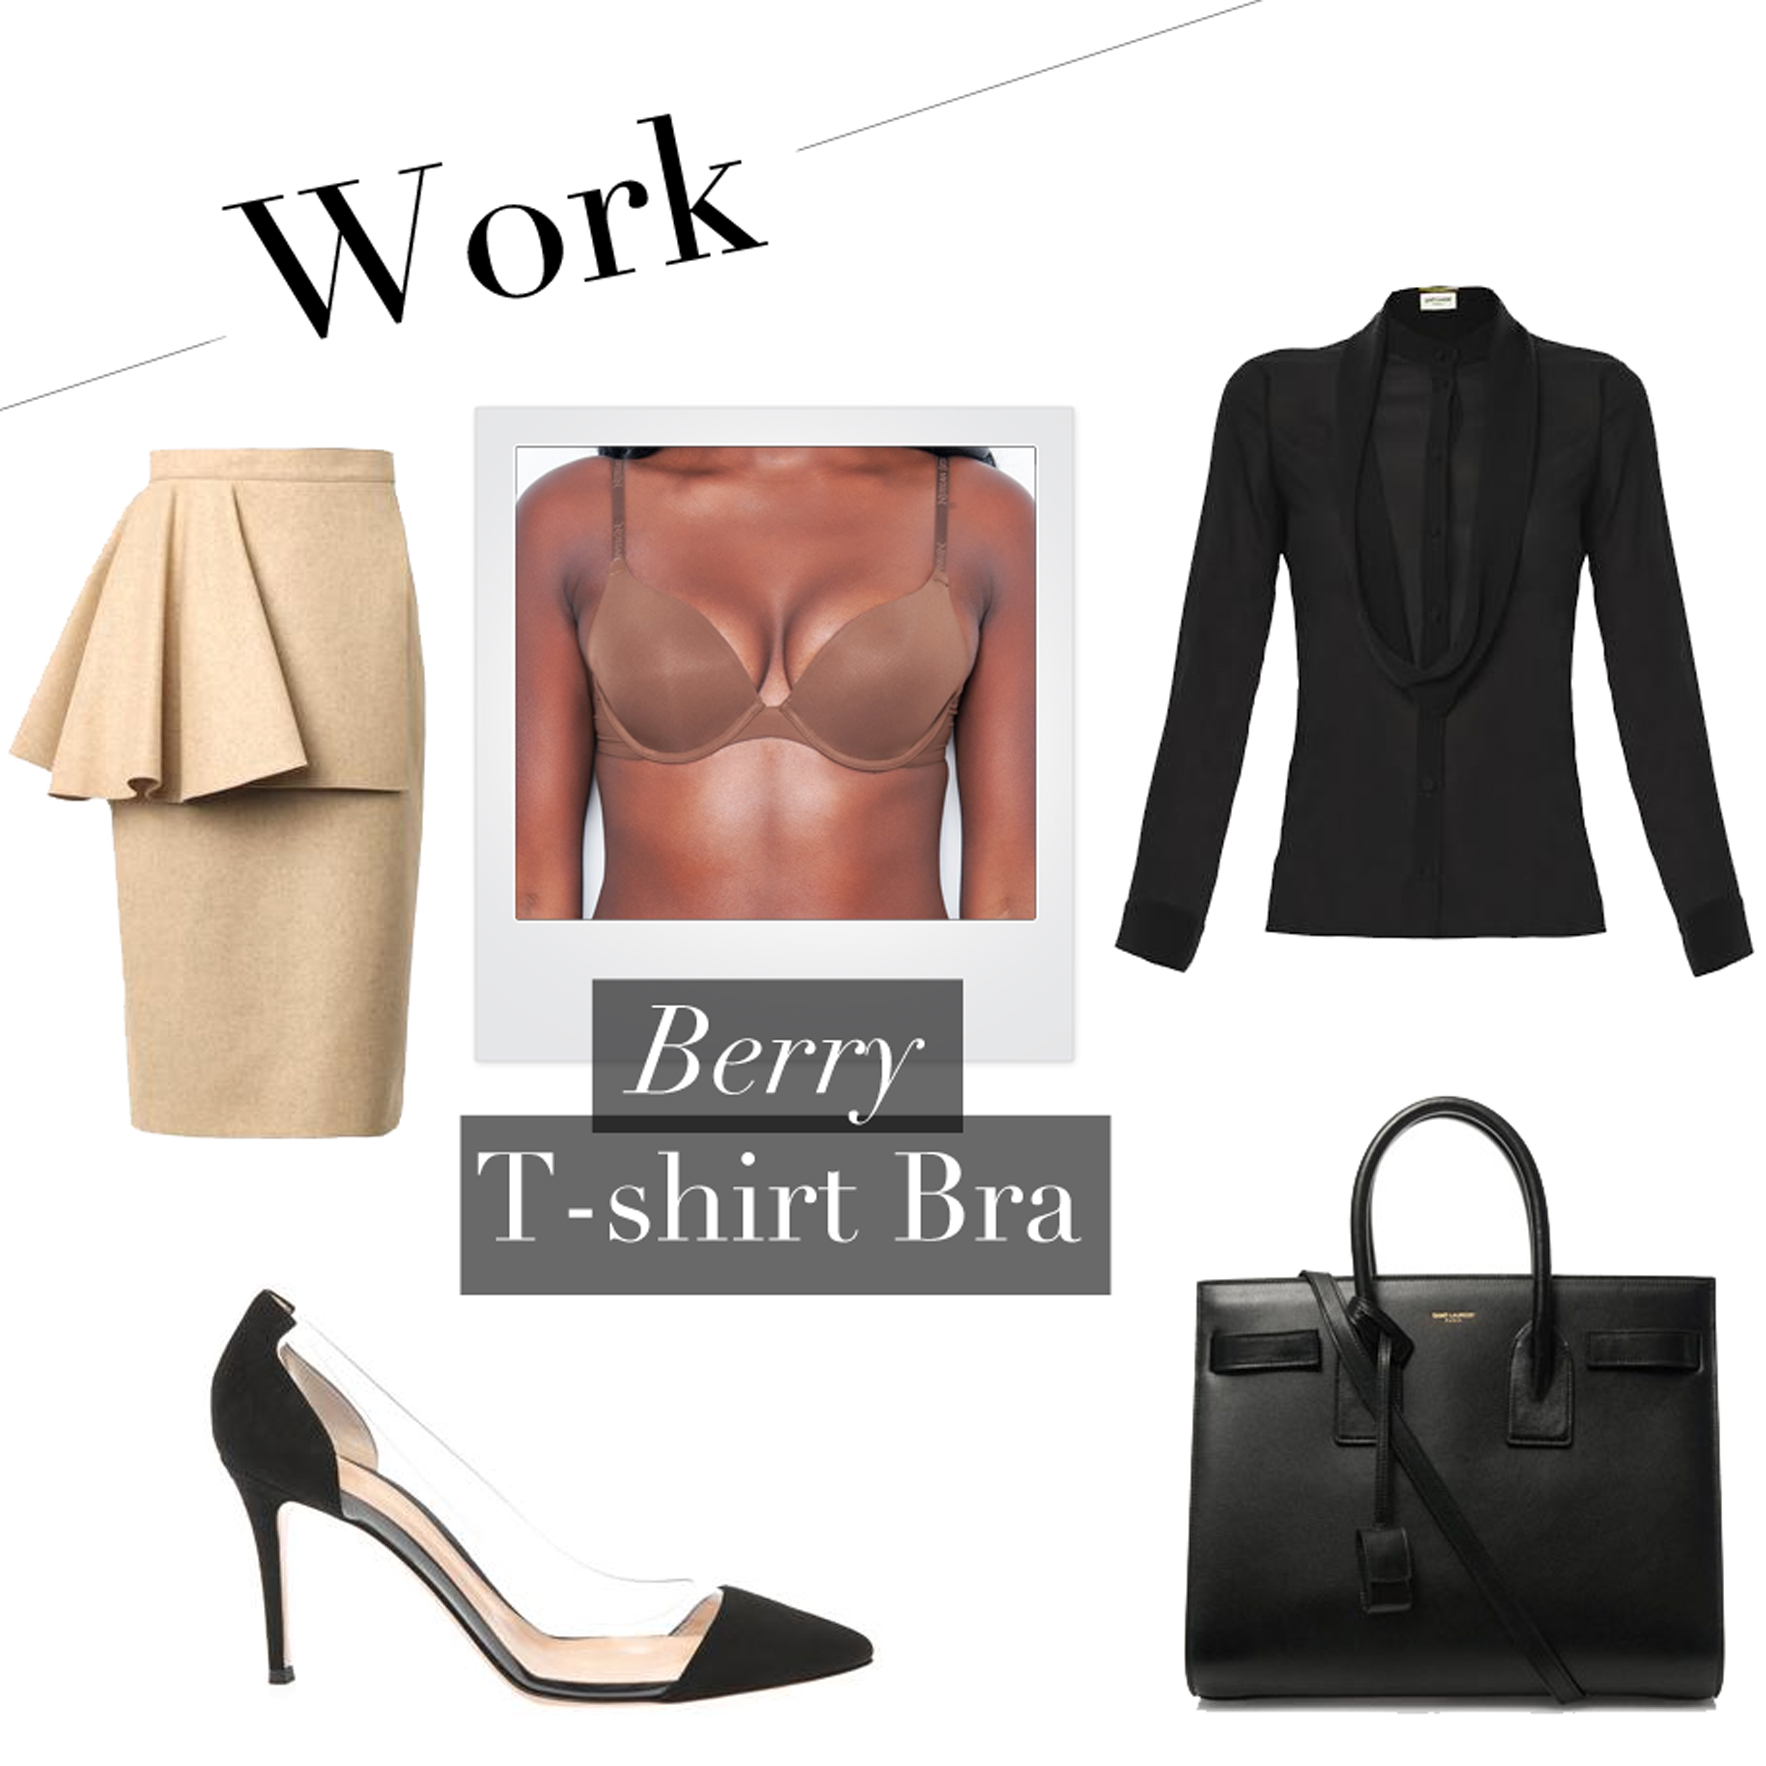 work-outfit-inspiration-nubian-skin-lingerie01